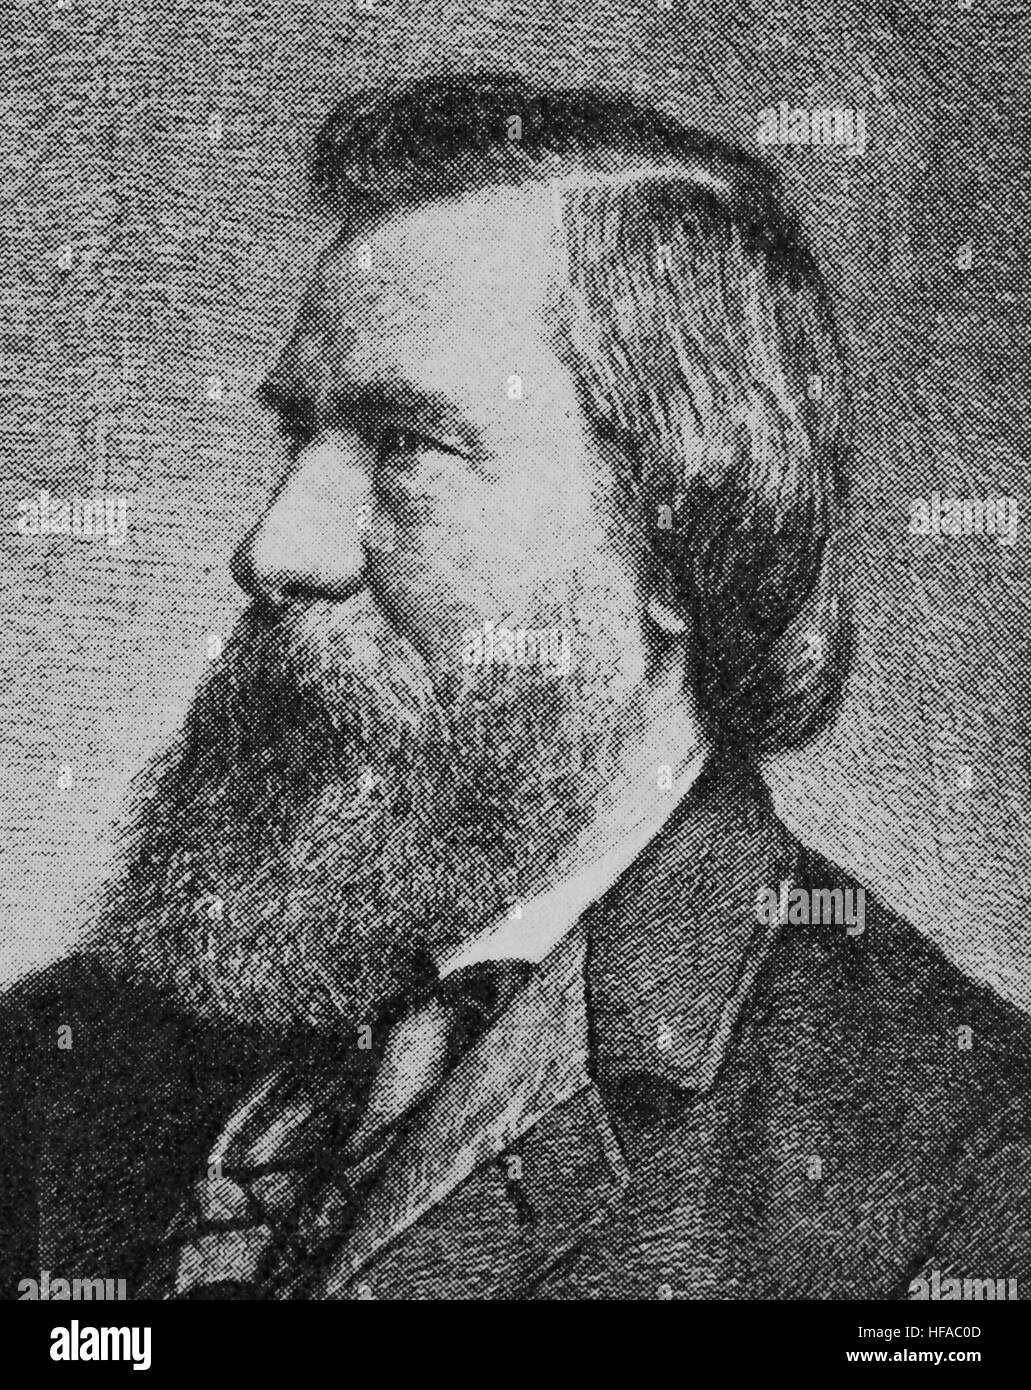 Moritz Lazarus, 1824-1903, born at Filehne, in the Grand Duchy of Posen, was a German philosopher, psychologist, - Stock Image